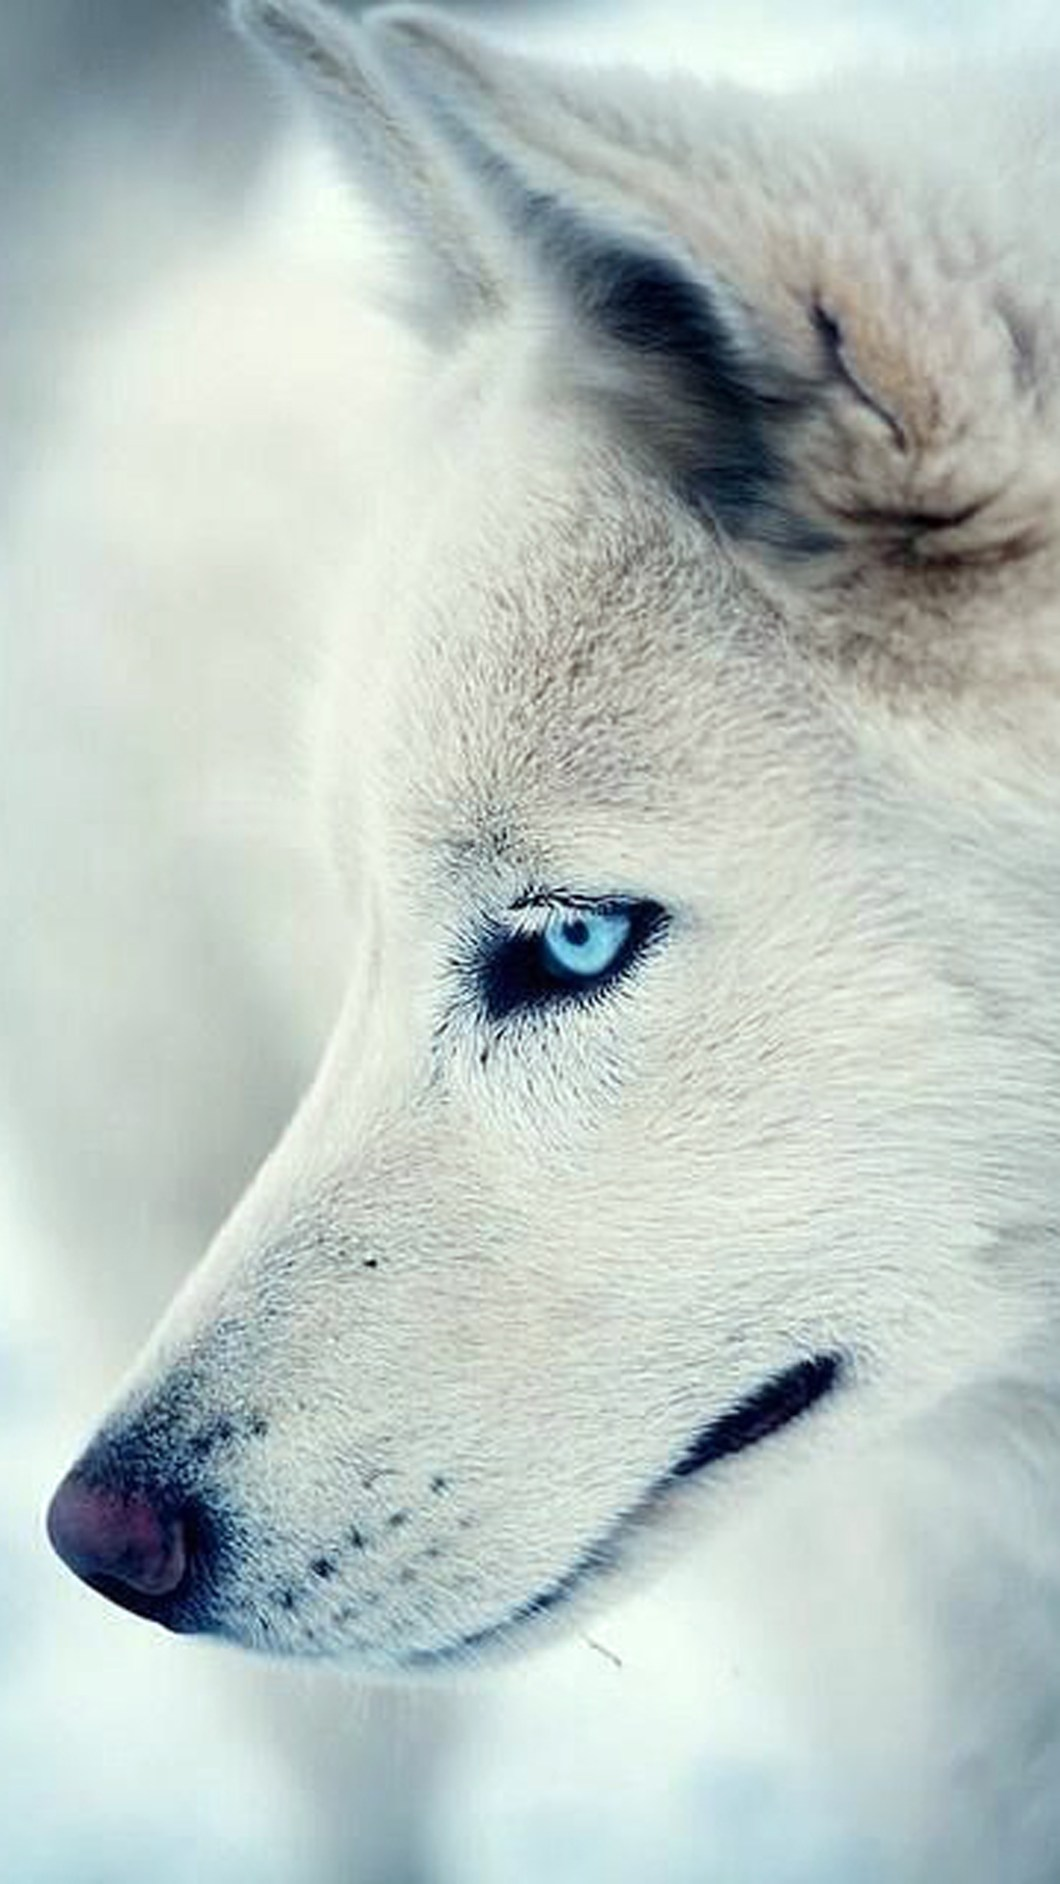 Wolf Wallpapers For Iphone X Bestpicture1 Org